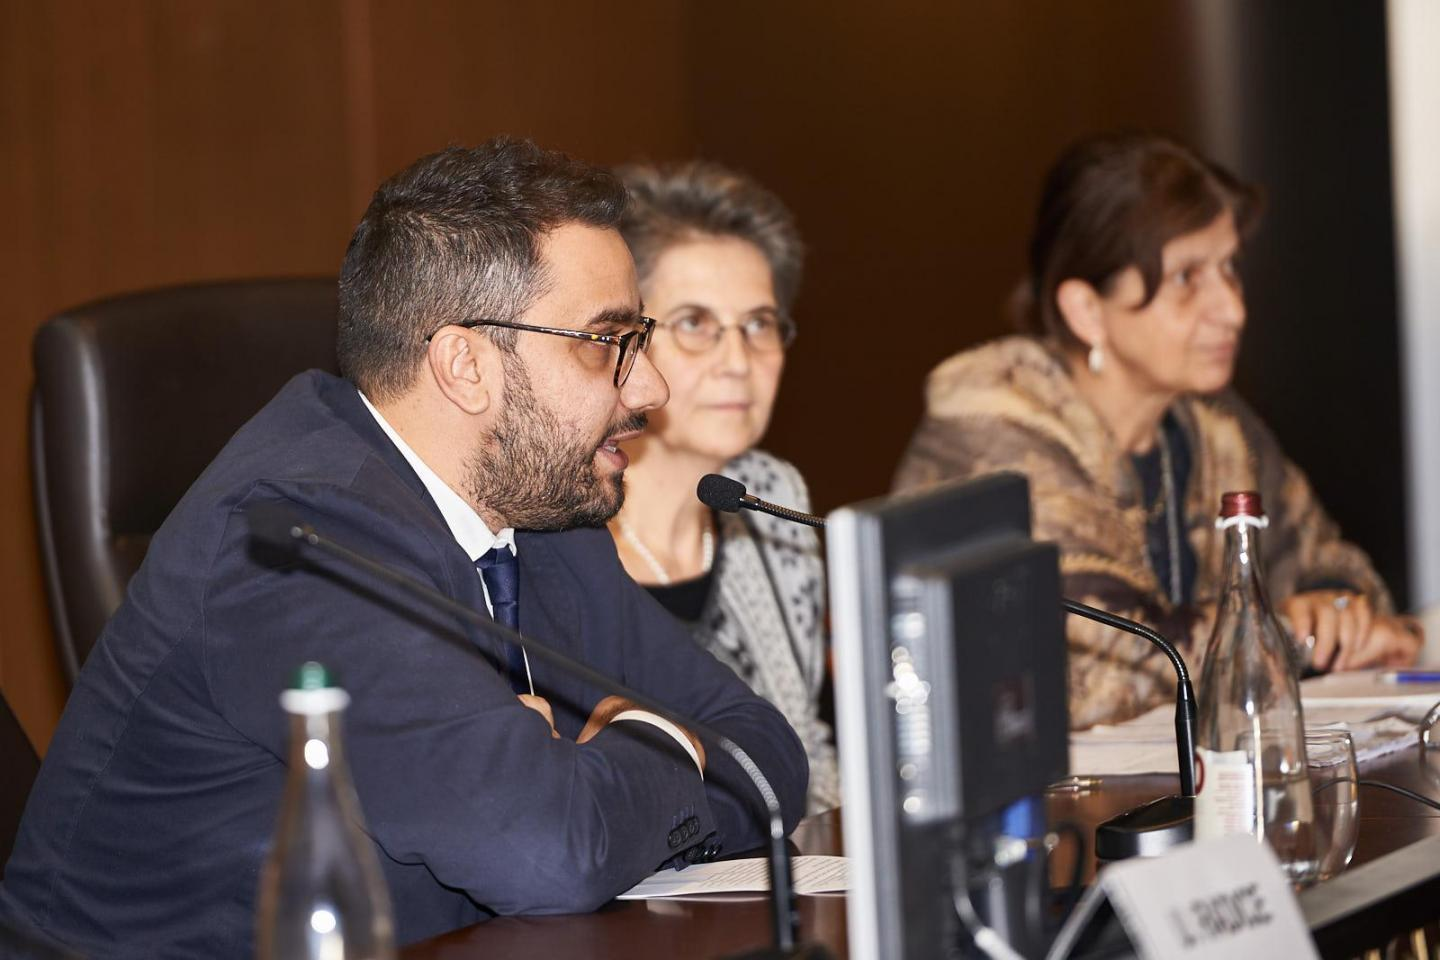 Gianluca Salza, city Councilor Civita Castellana